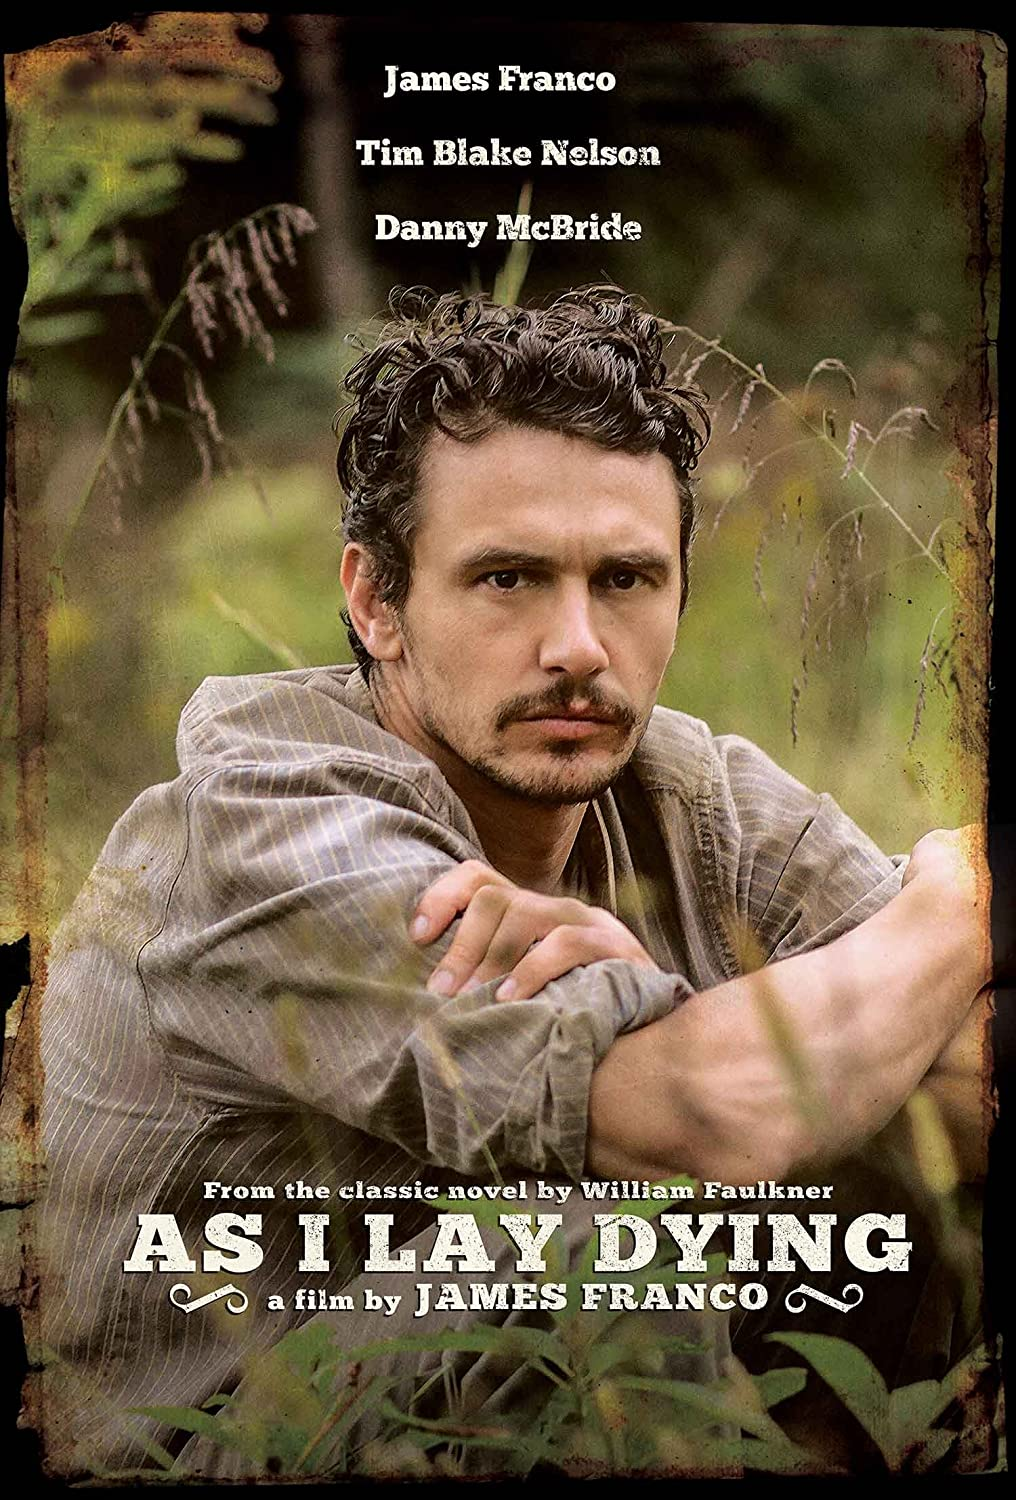 Amazon.com: As I Lay Dying: James Franco, Tim Blake Nelson, Danny ...